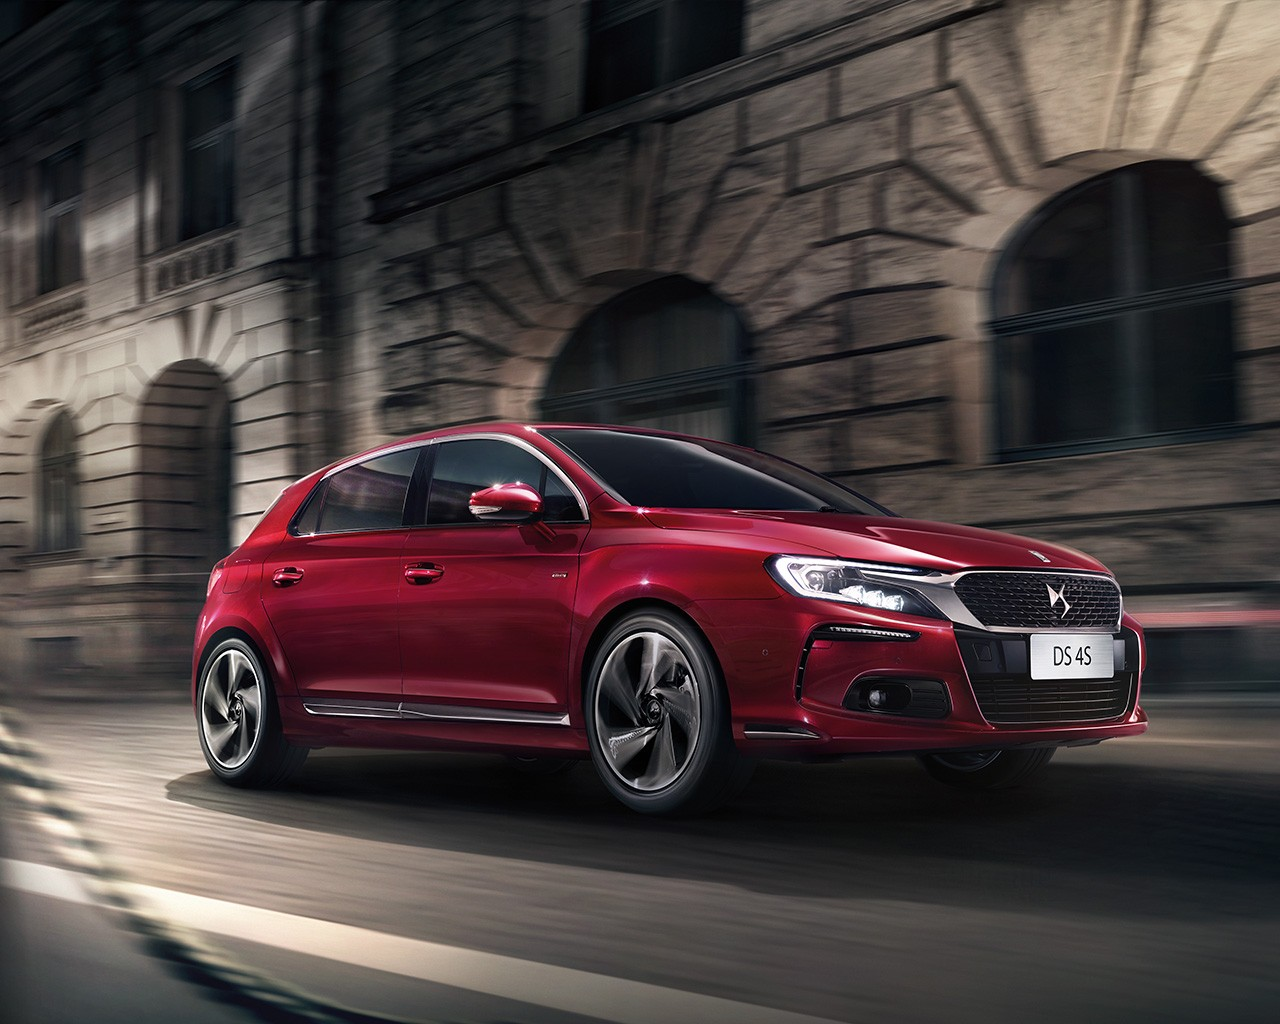 2017-ds-4s-launched-in-bejing-only-available-in-china_4